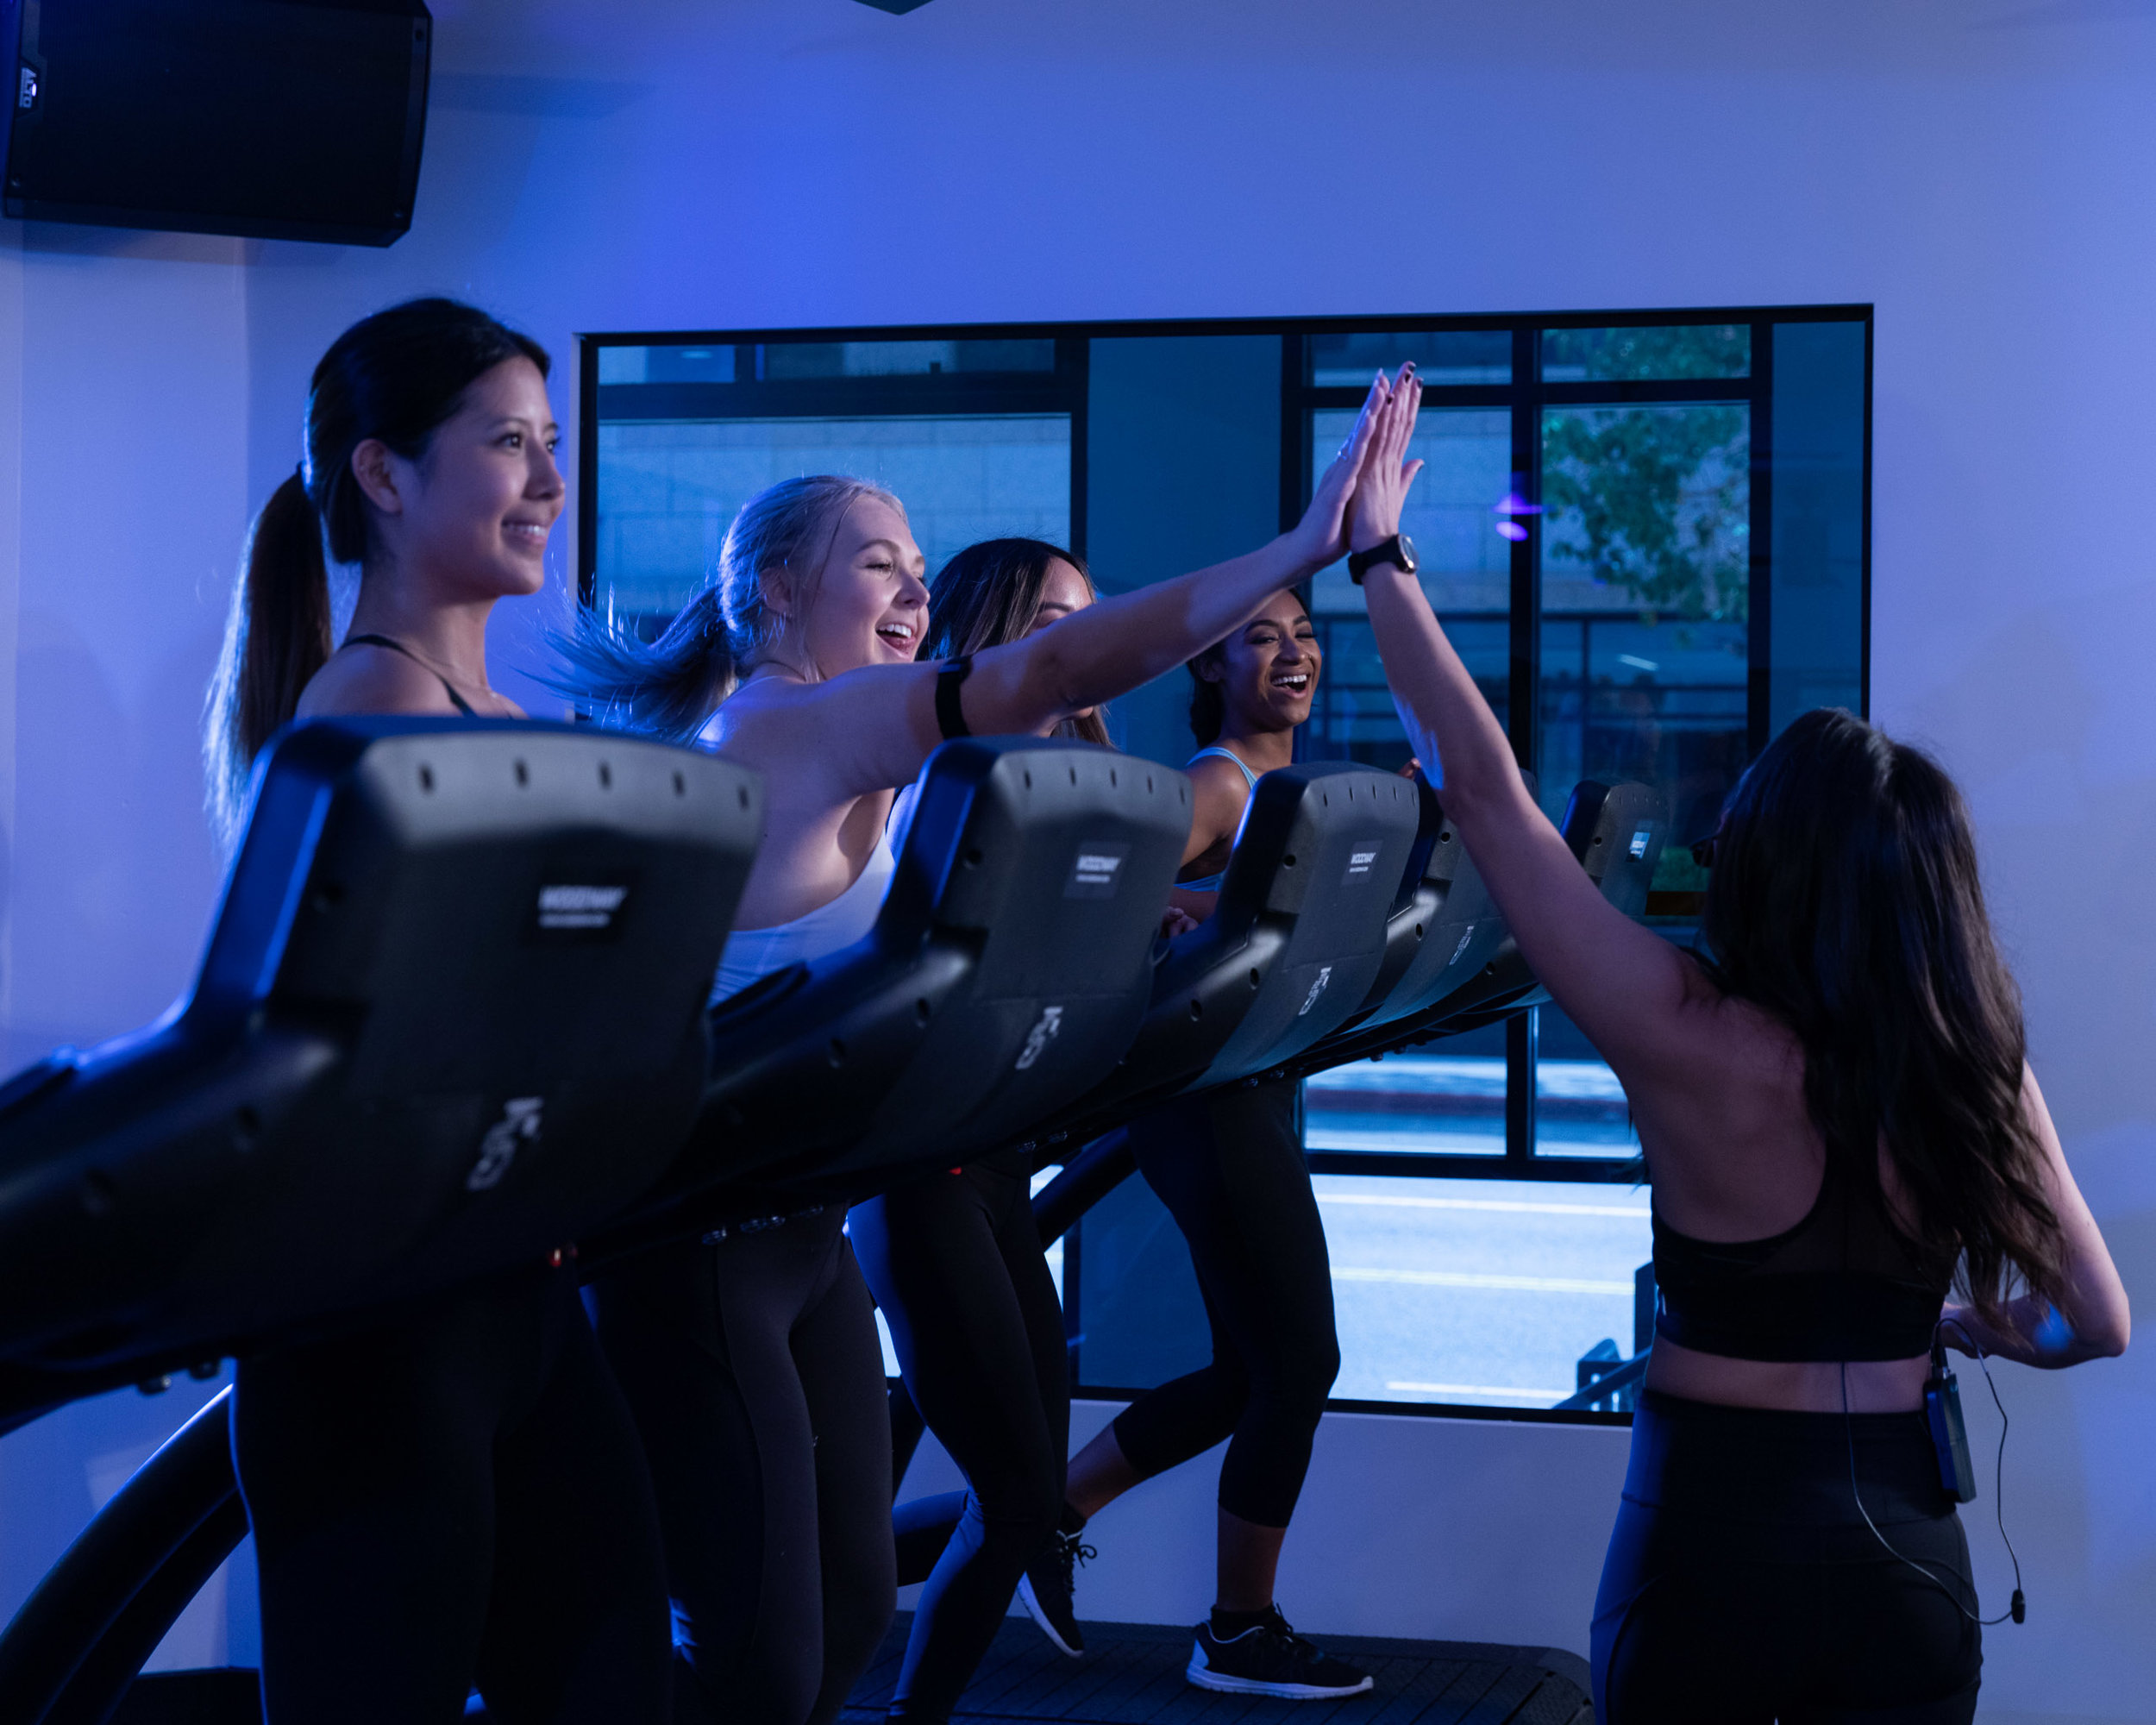 Community - You set your individual pace and goals, but in our DASH classes, you and your classmates will create an unstoppable, collective energy greater than its individual parts.